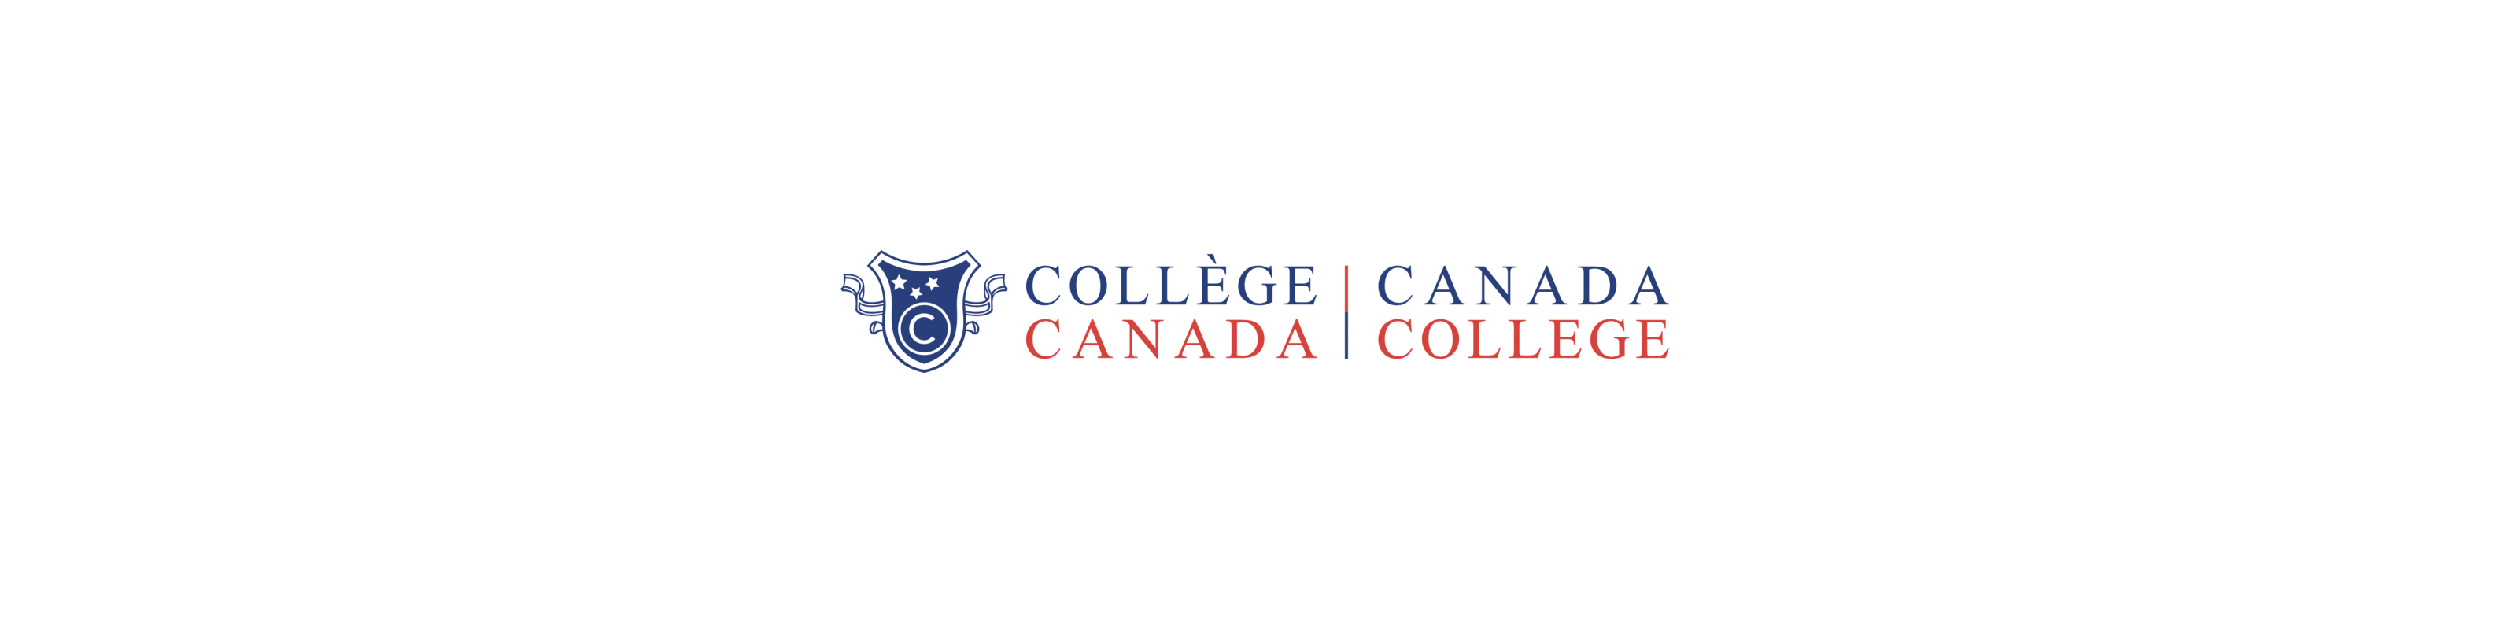 CANADACOLLEGE